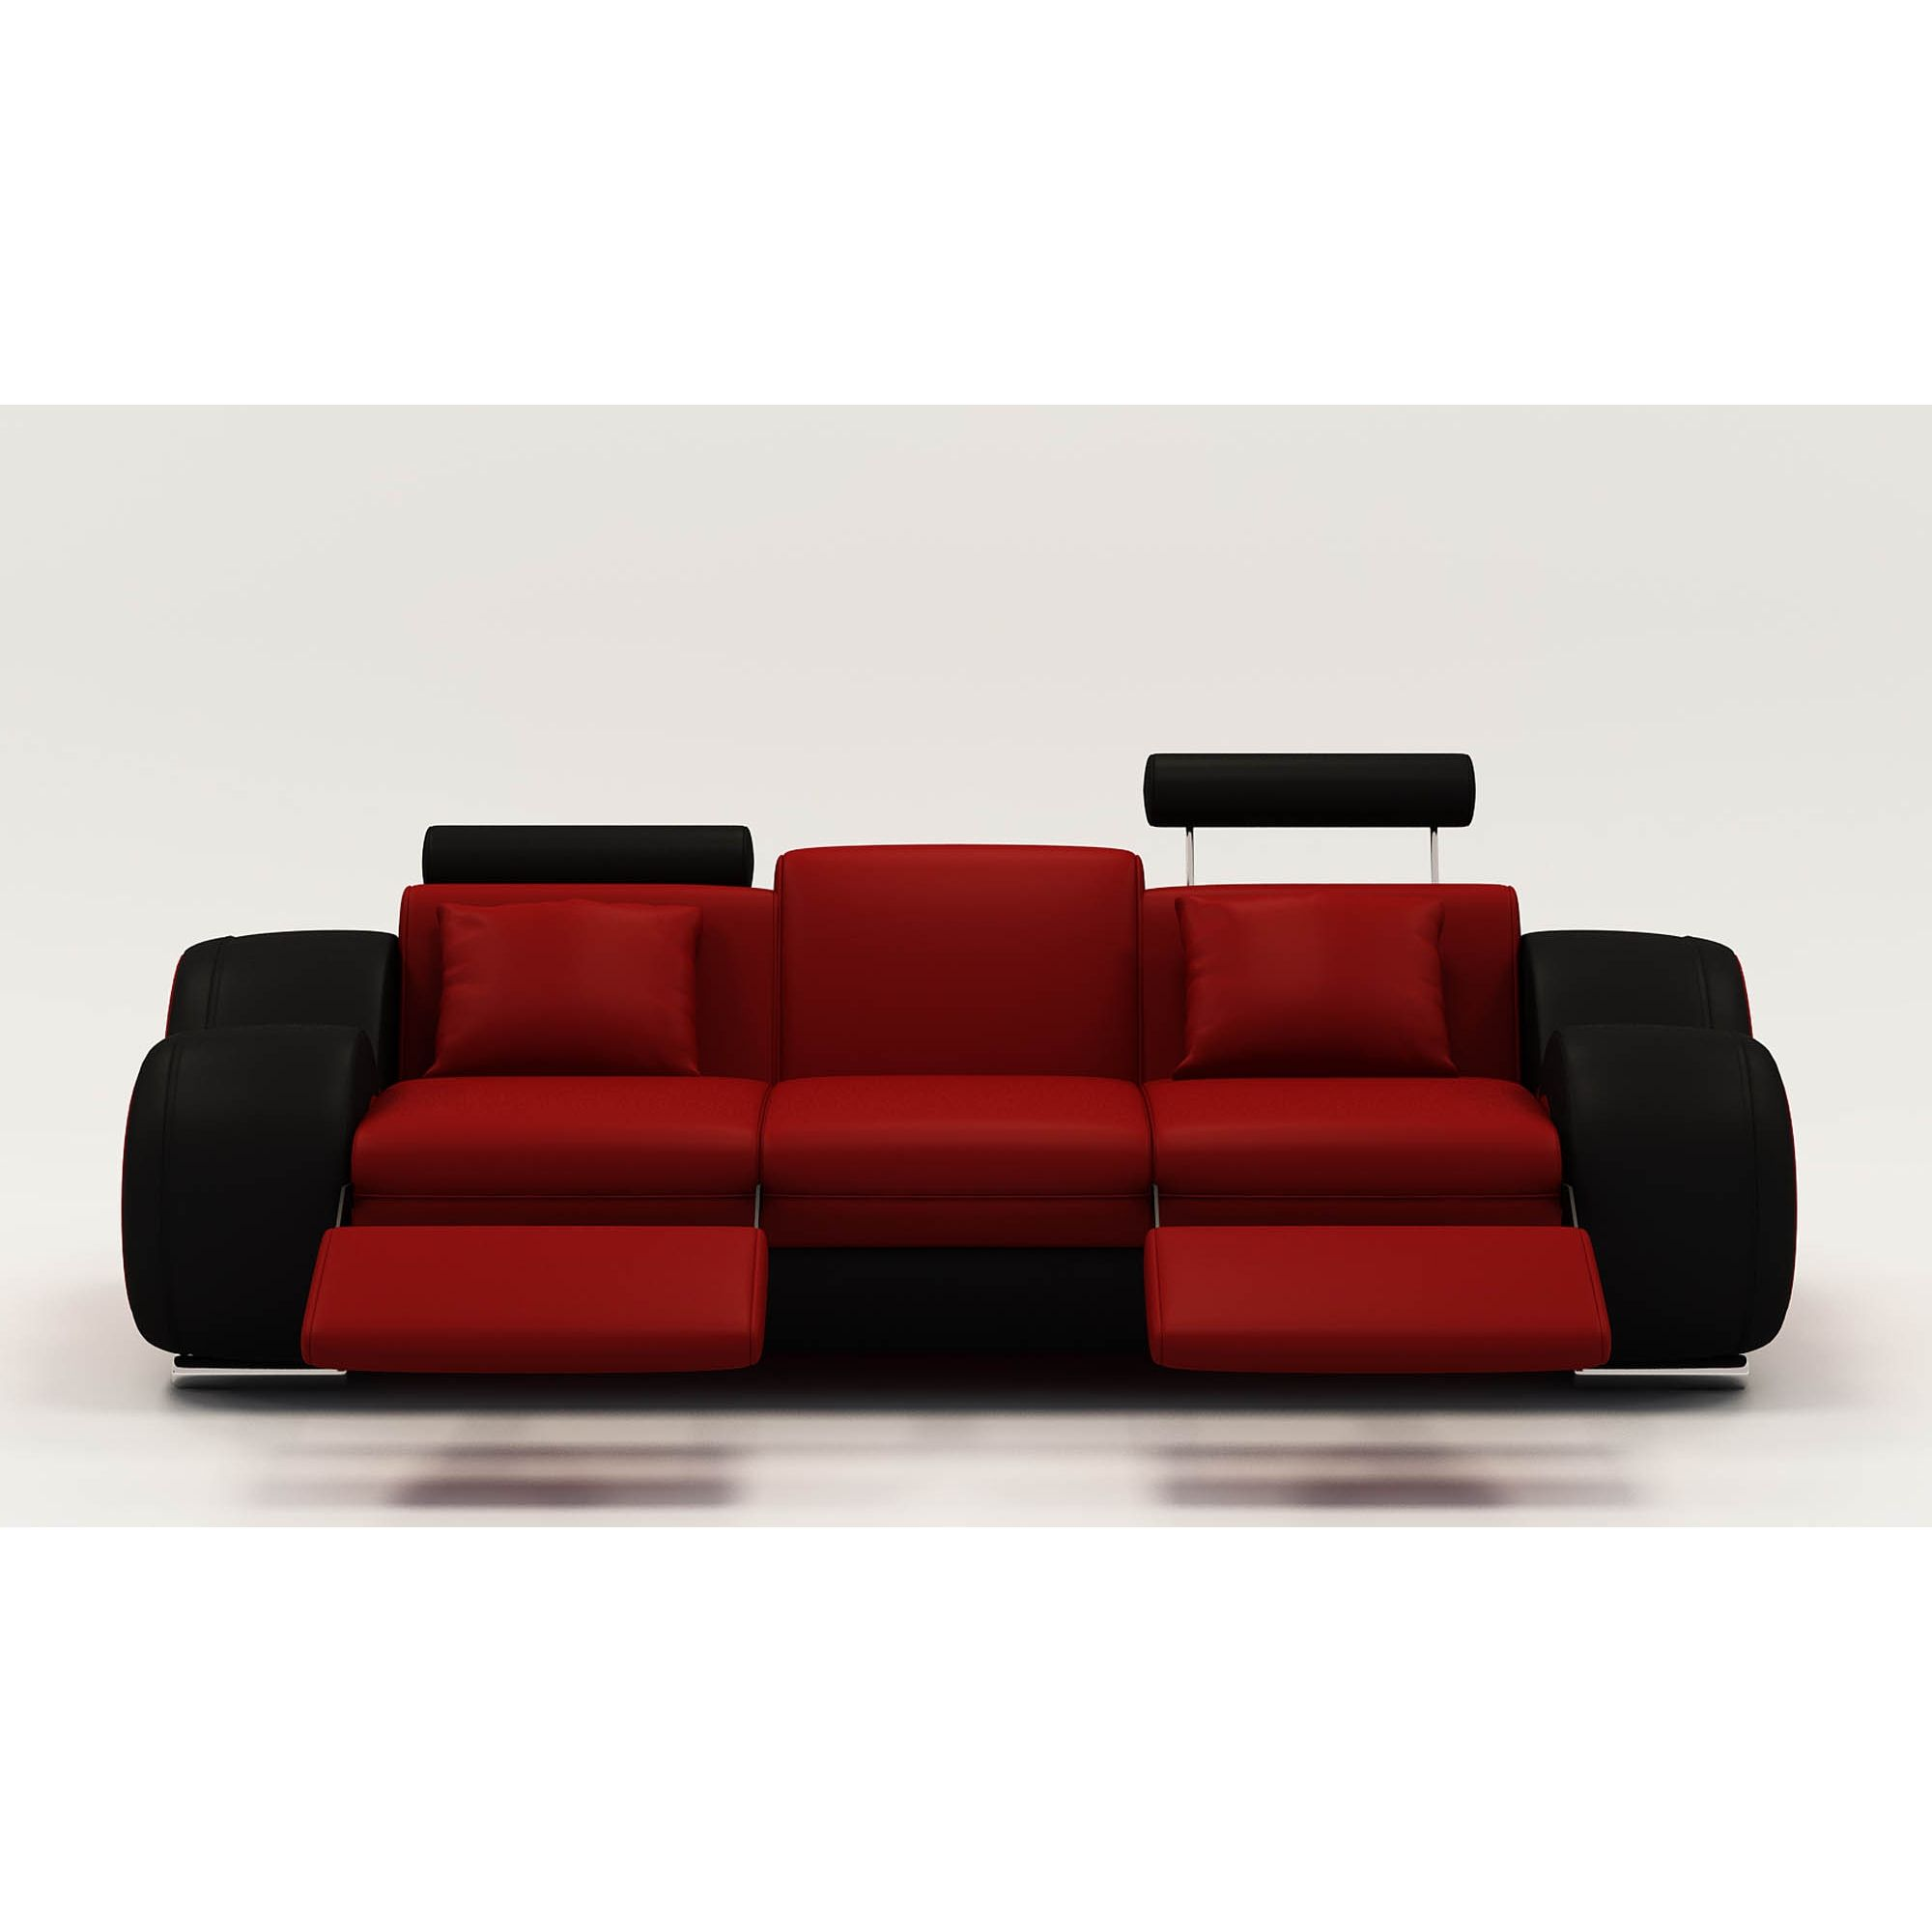 Deco in paris 7 canape design 3 places cuir rouge et noir tetieres relax os - Canape cuir noir design ...